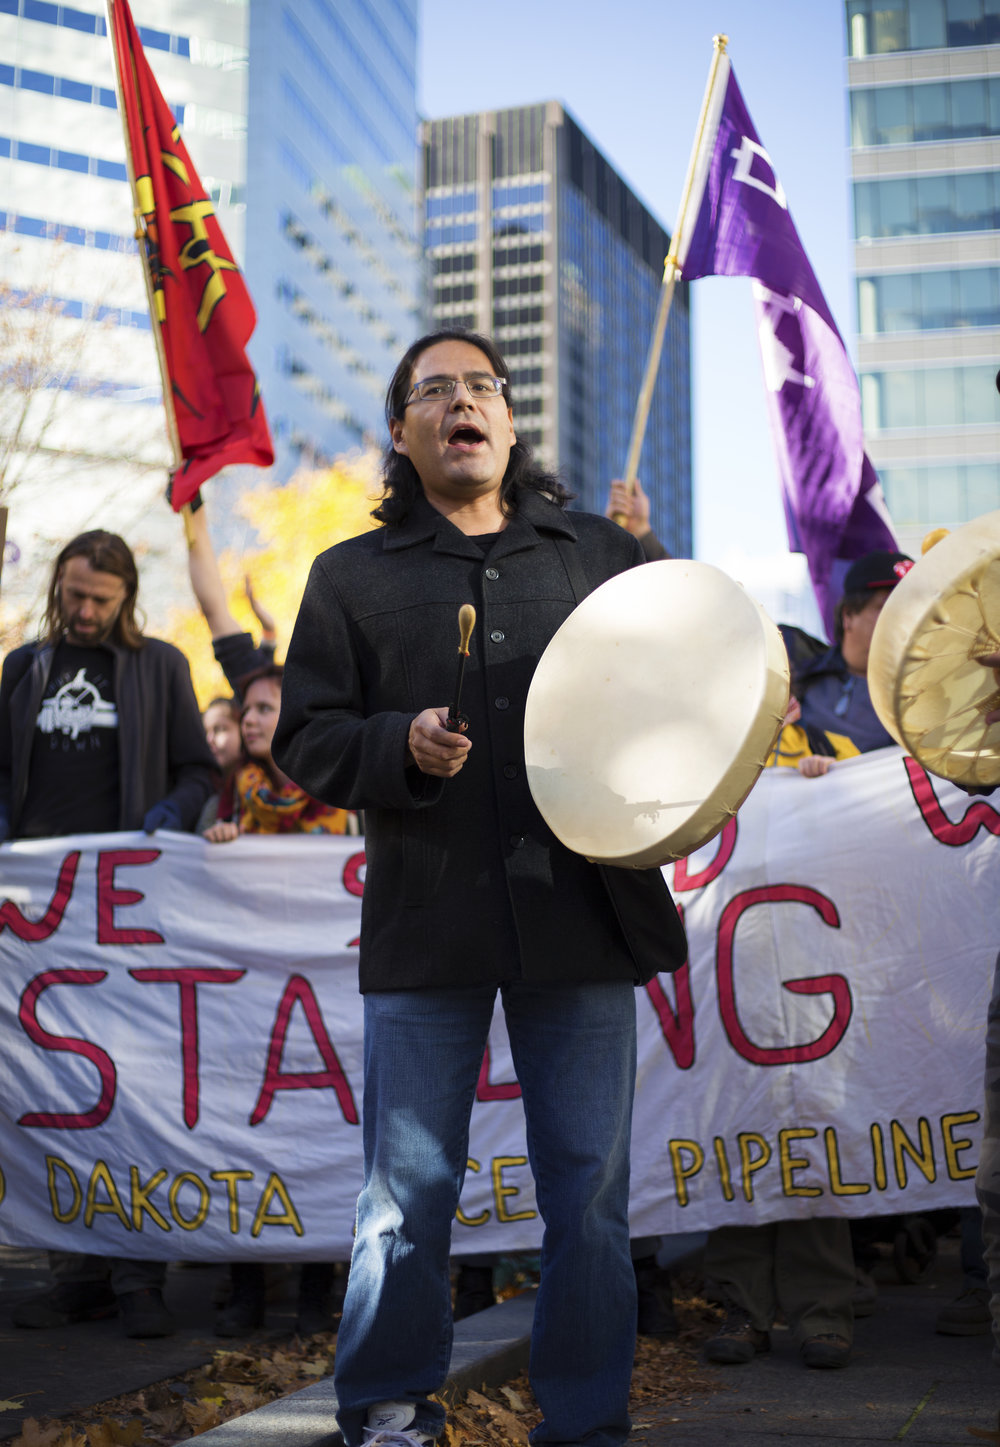 Indigenous Canadian leading a demonstration in Montreal against the proposed Dakota Access Pipeline (November 7 2016)